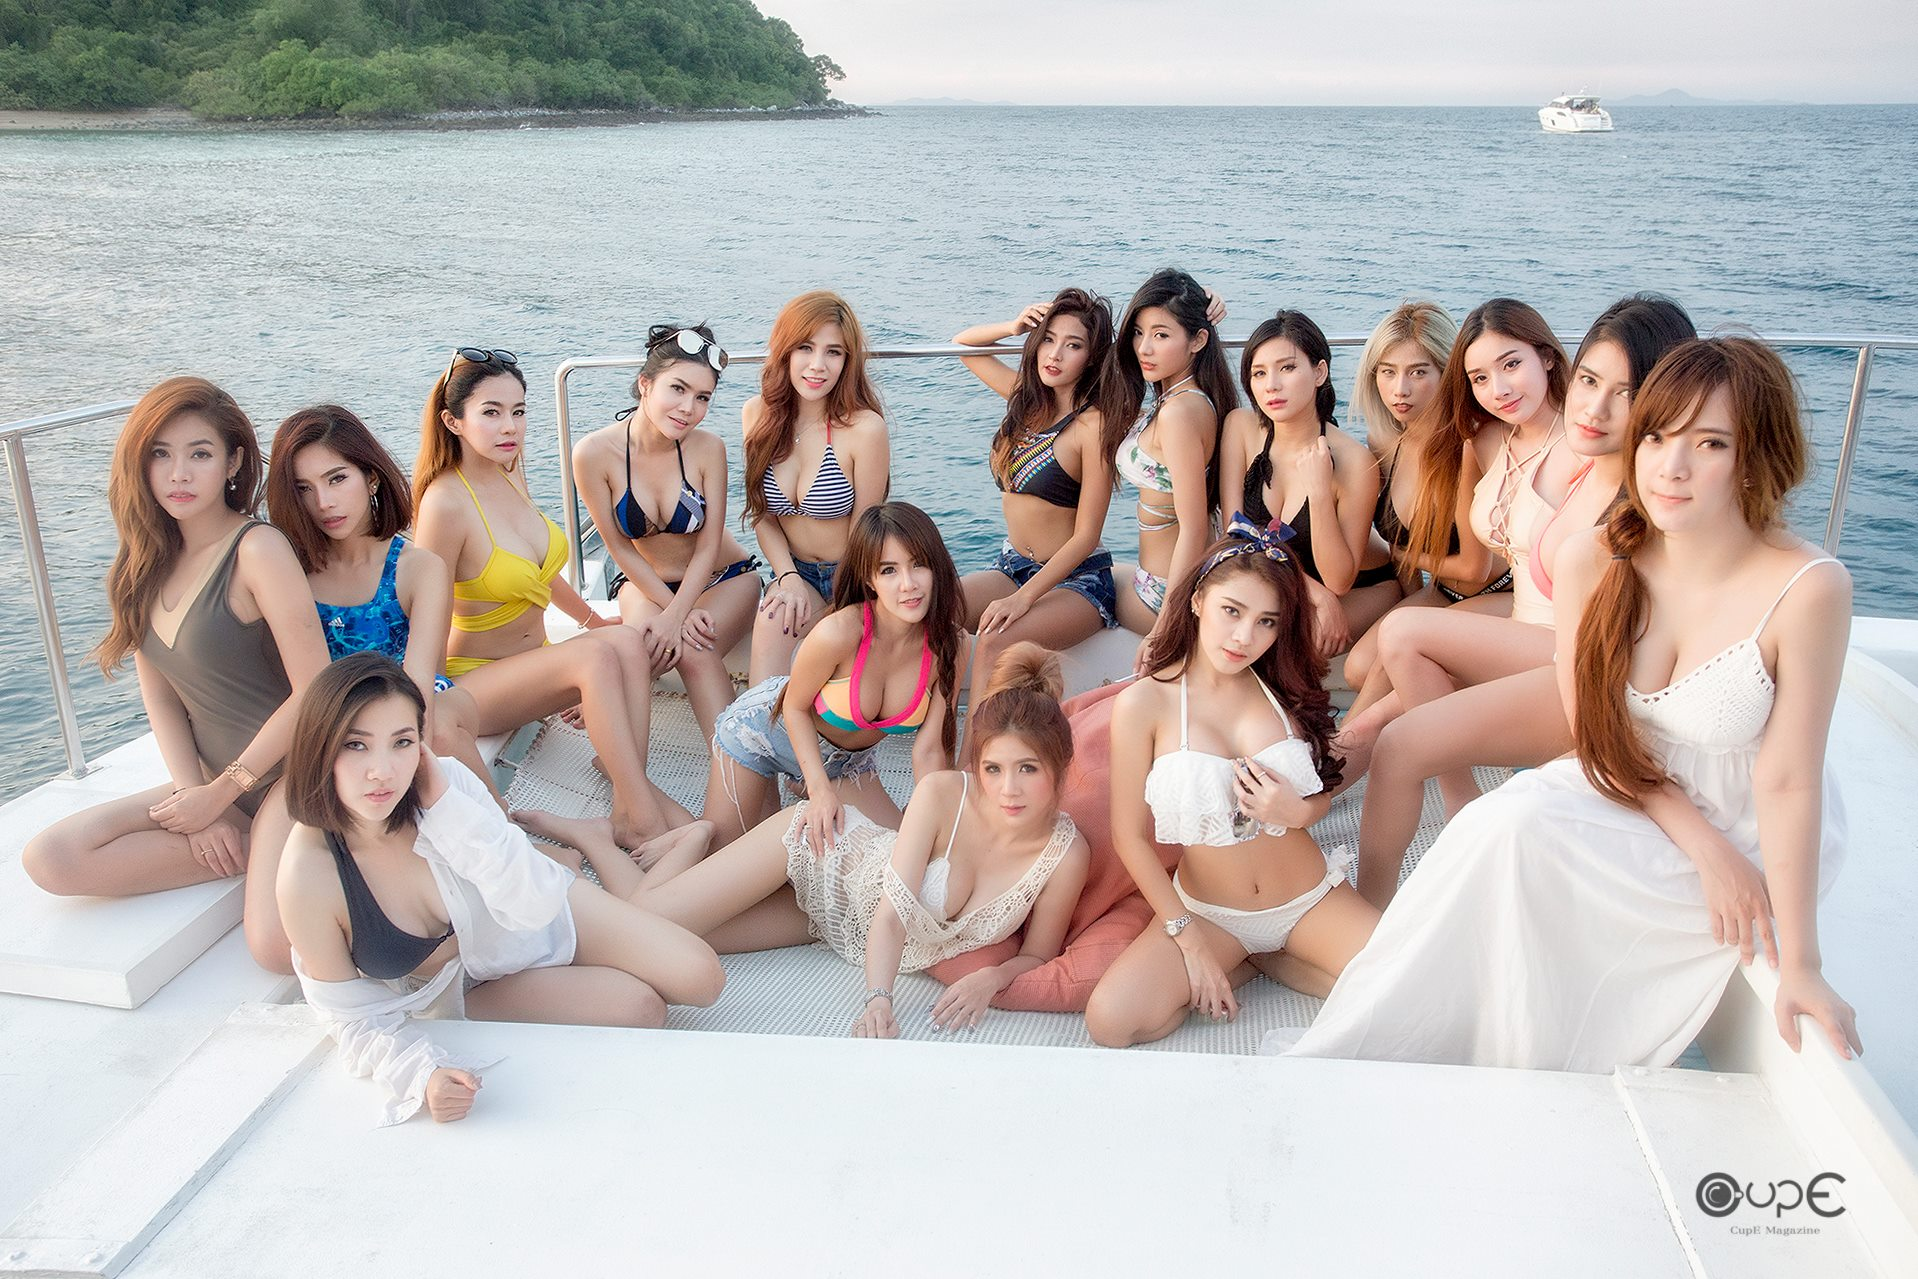 16 thai models on a boat